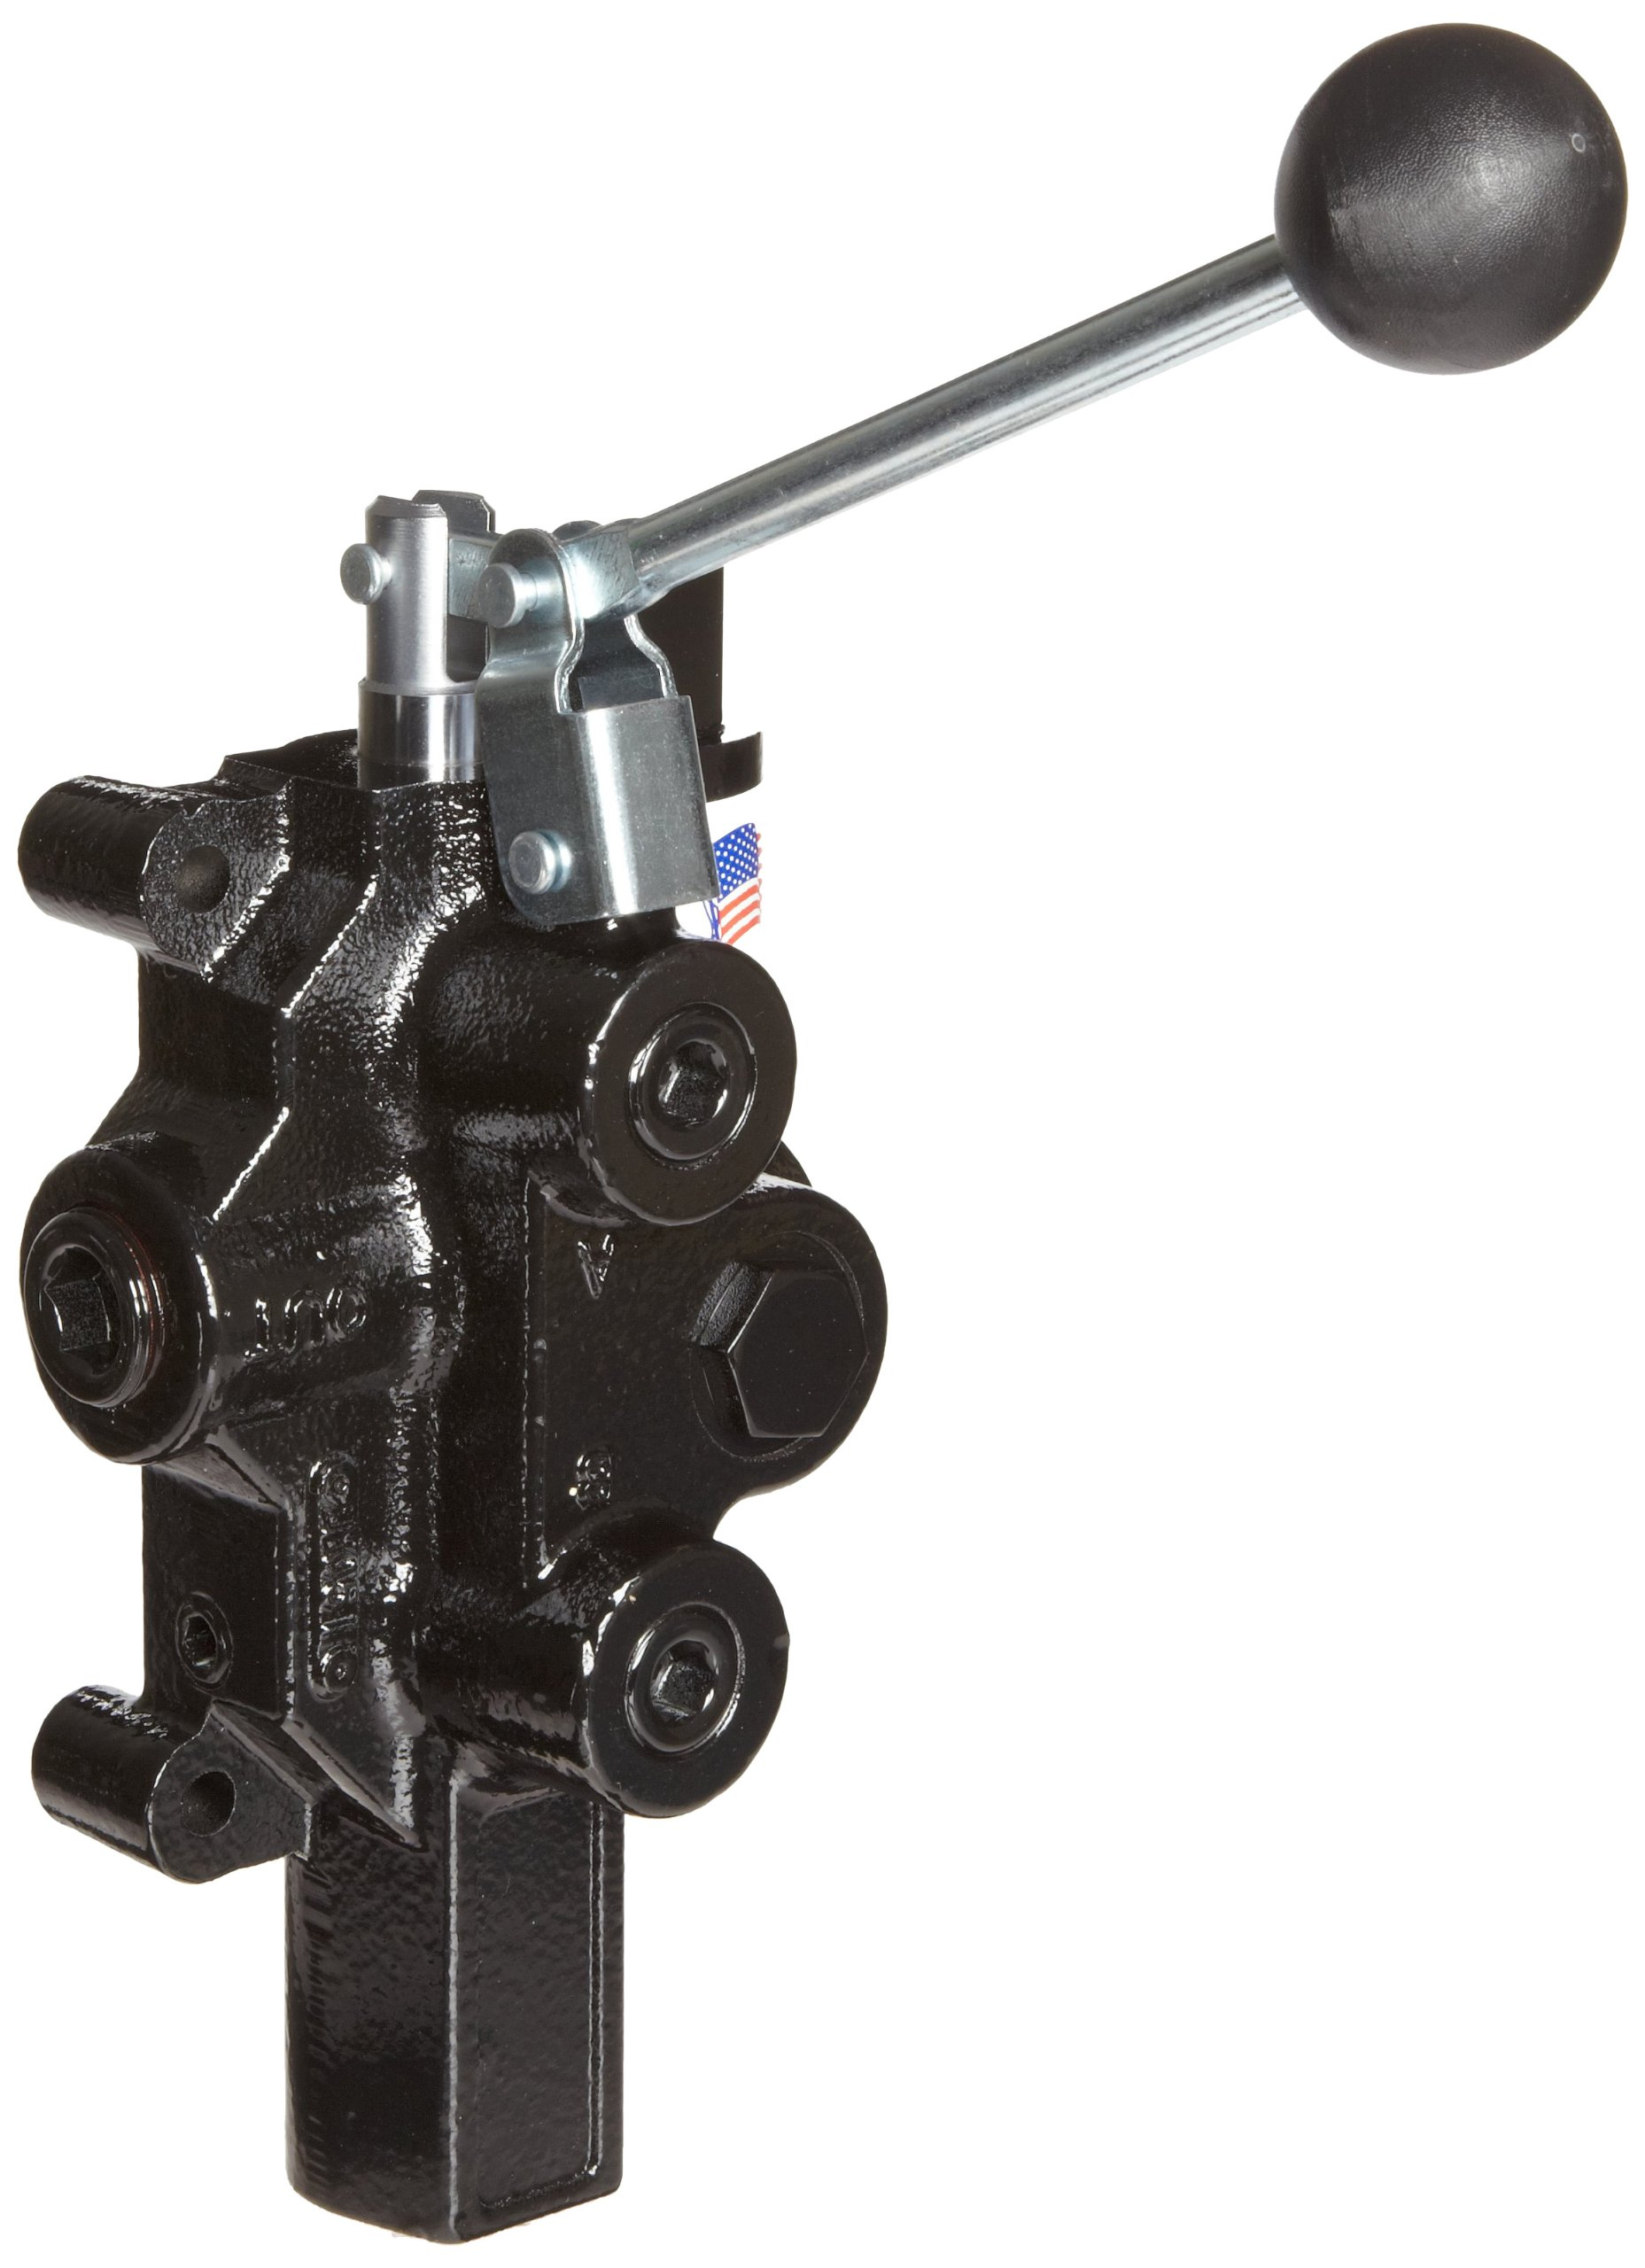 Prince RD-2575-T3-ESA1 Directional Control Valve, Logsplitter, 3 Ways, 3 Positions, Spring Center To Neutral, Cast Iron, 3000 psi, Lever Handle, 20 gpm, In/Out: 3/4'' NPTF, Work 1/2'' NPTF